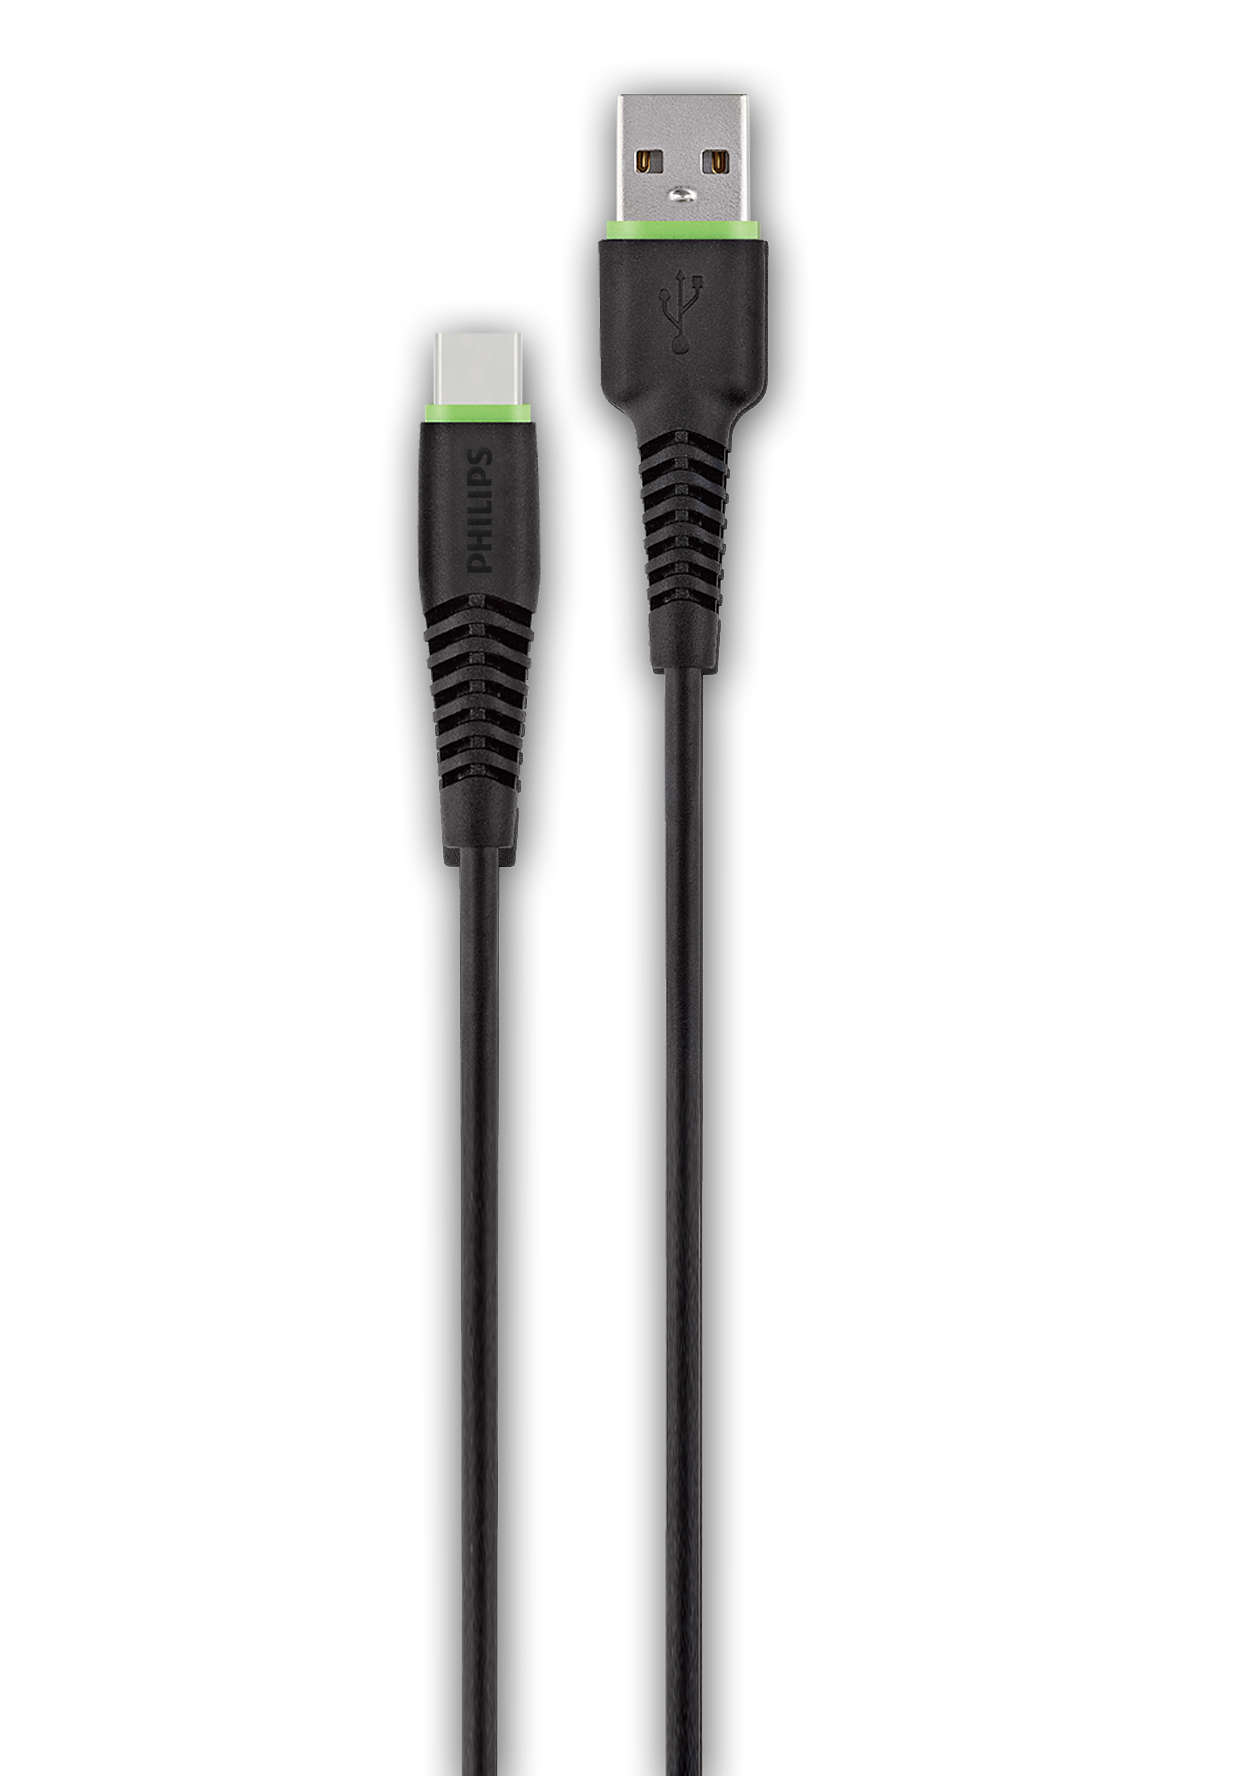 1m USB A to C cable